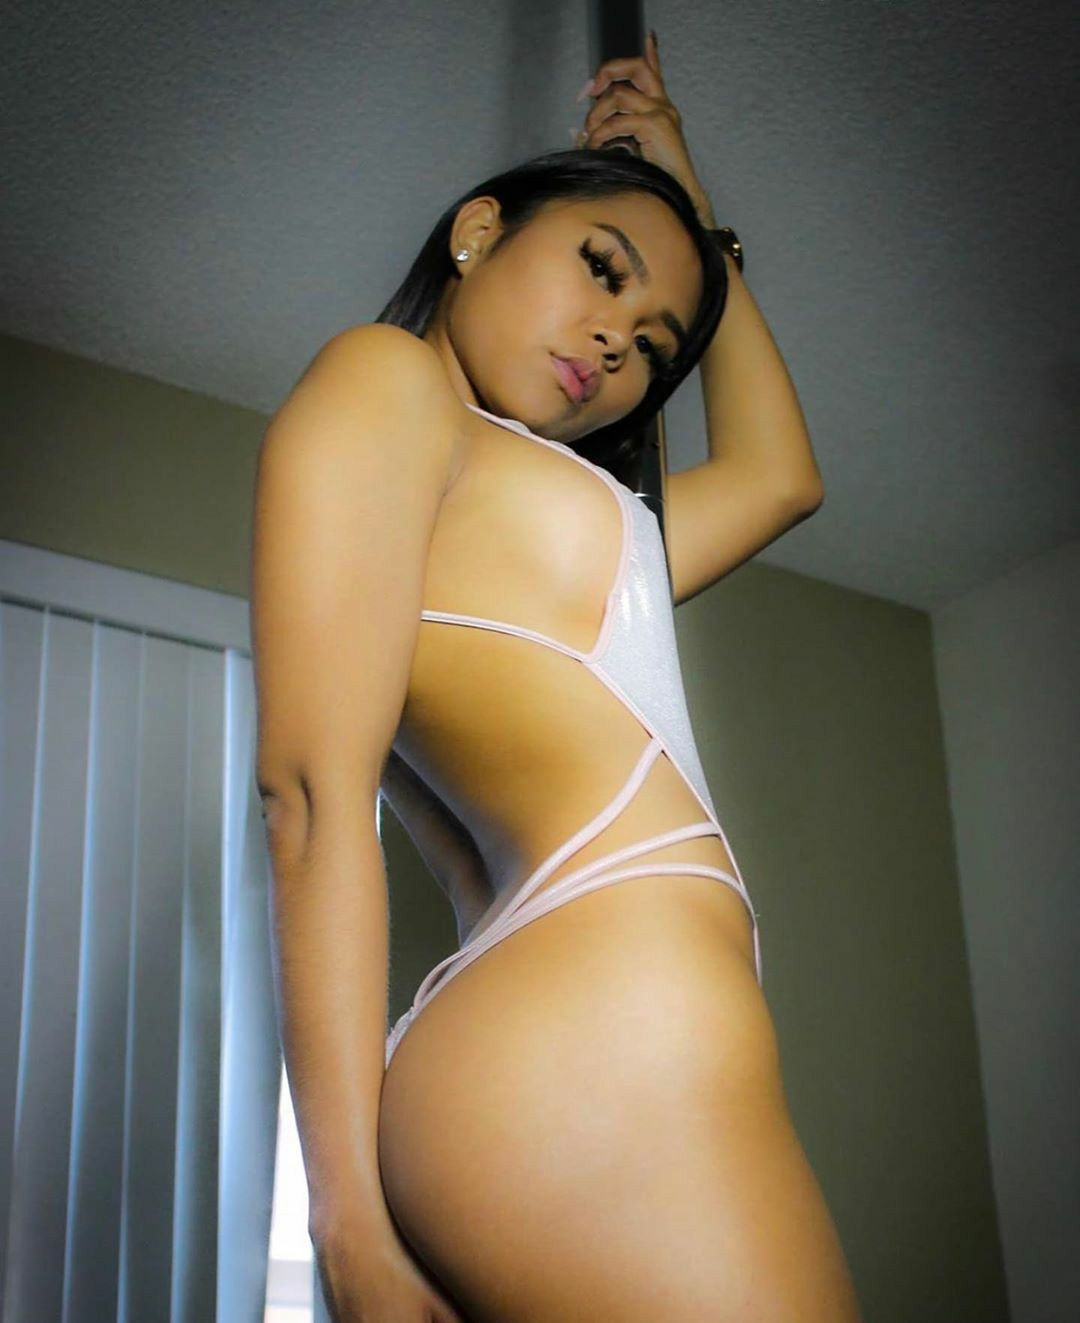 Bikini voyeur asian panties